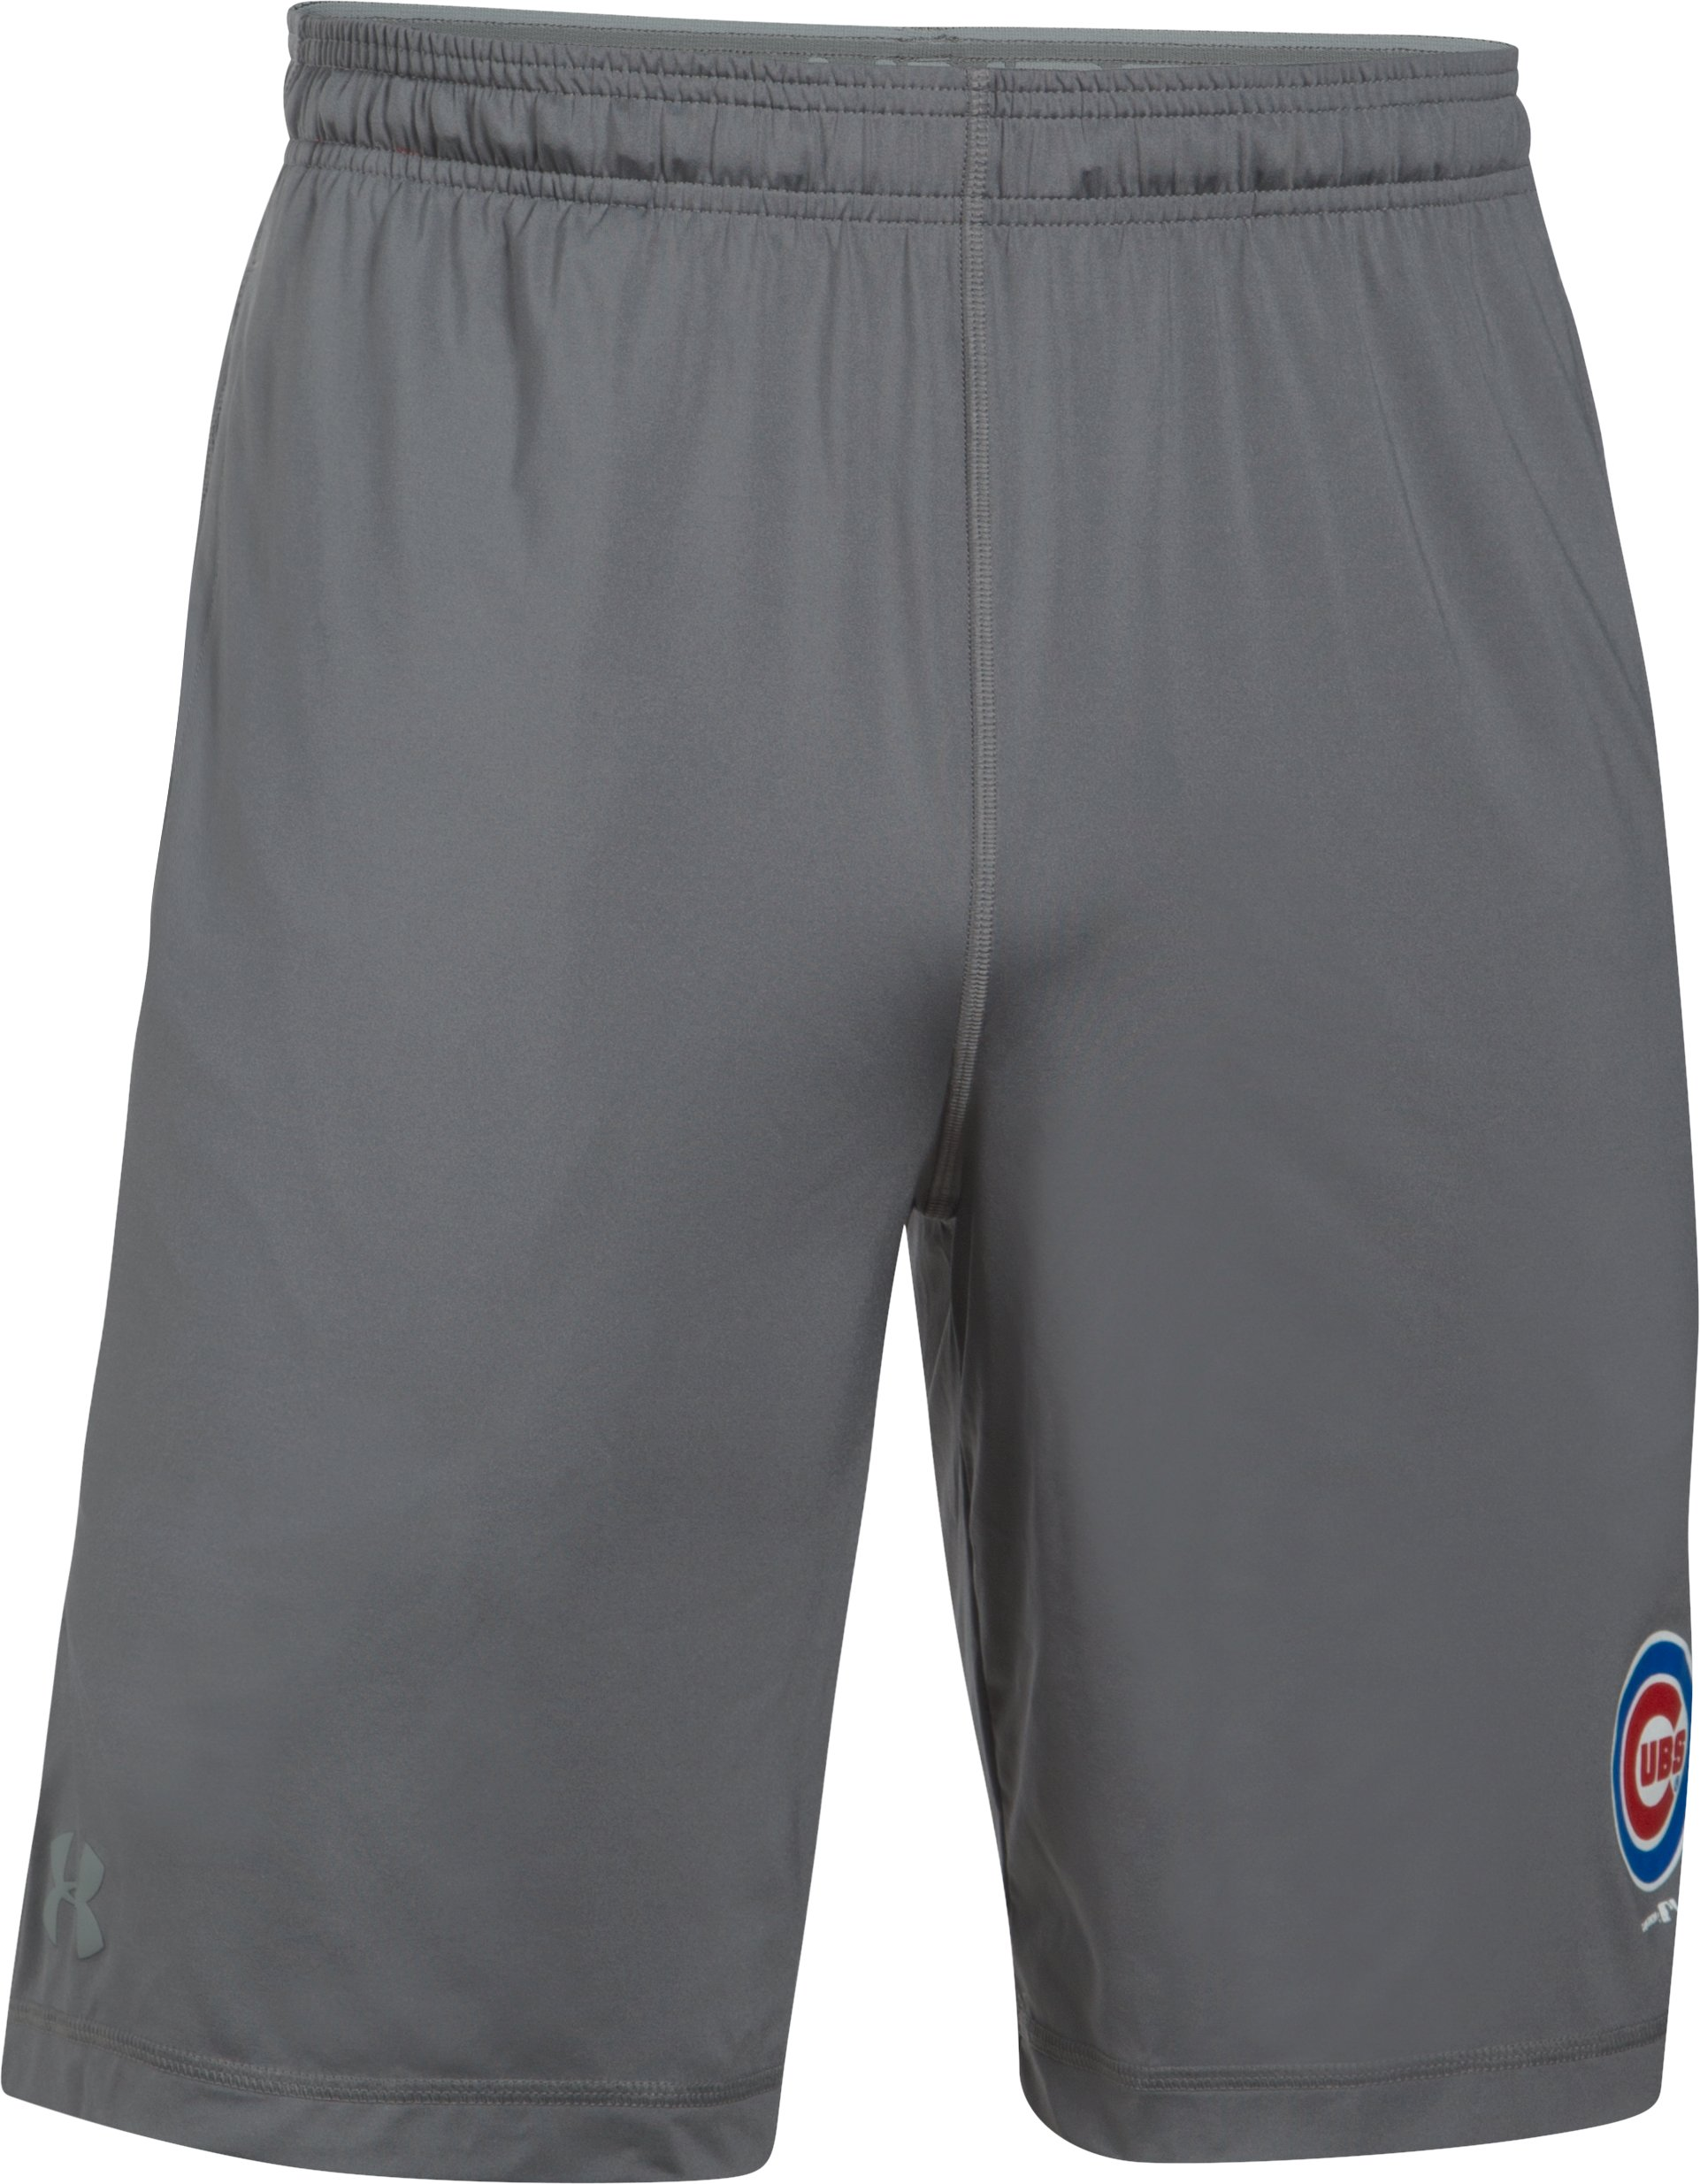 Men's Chicago Cubs UA Raid Shorts, Graphite, undefined